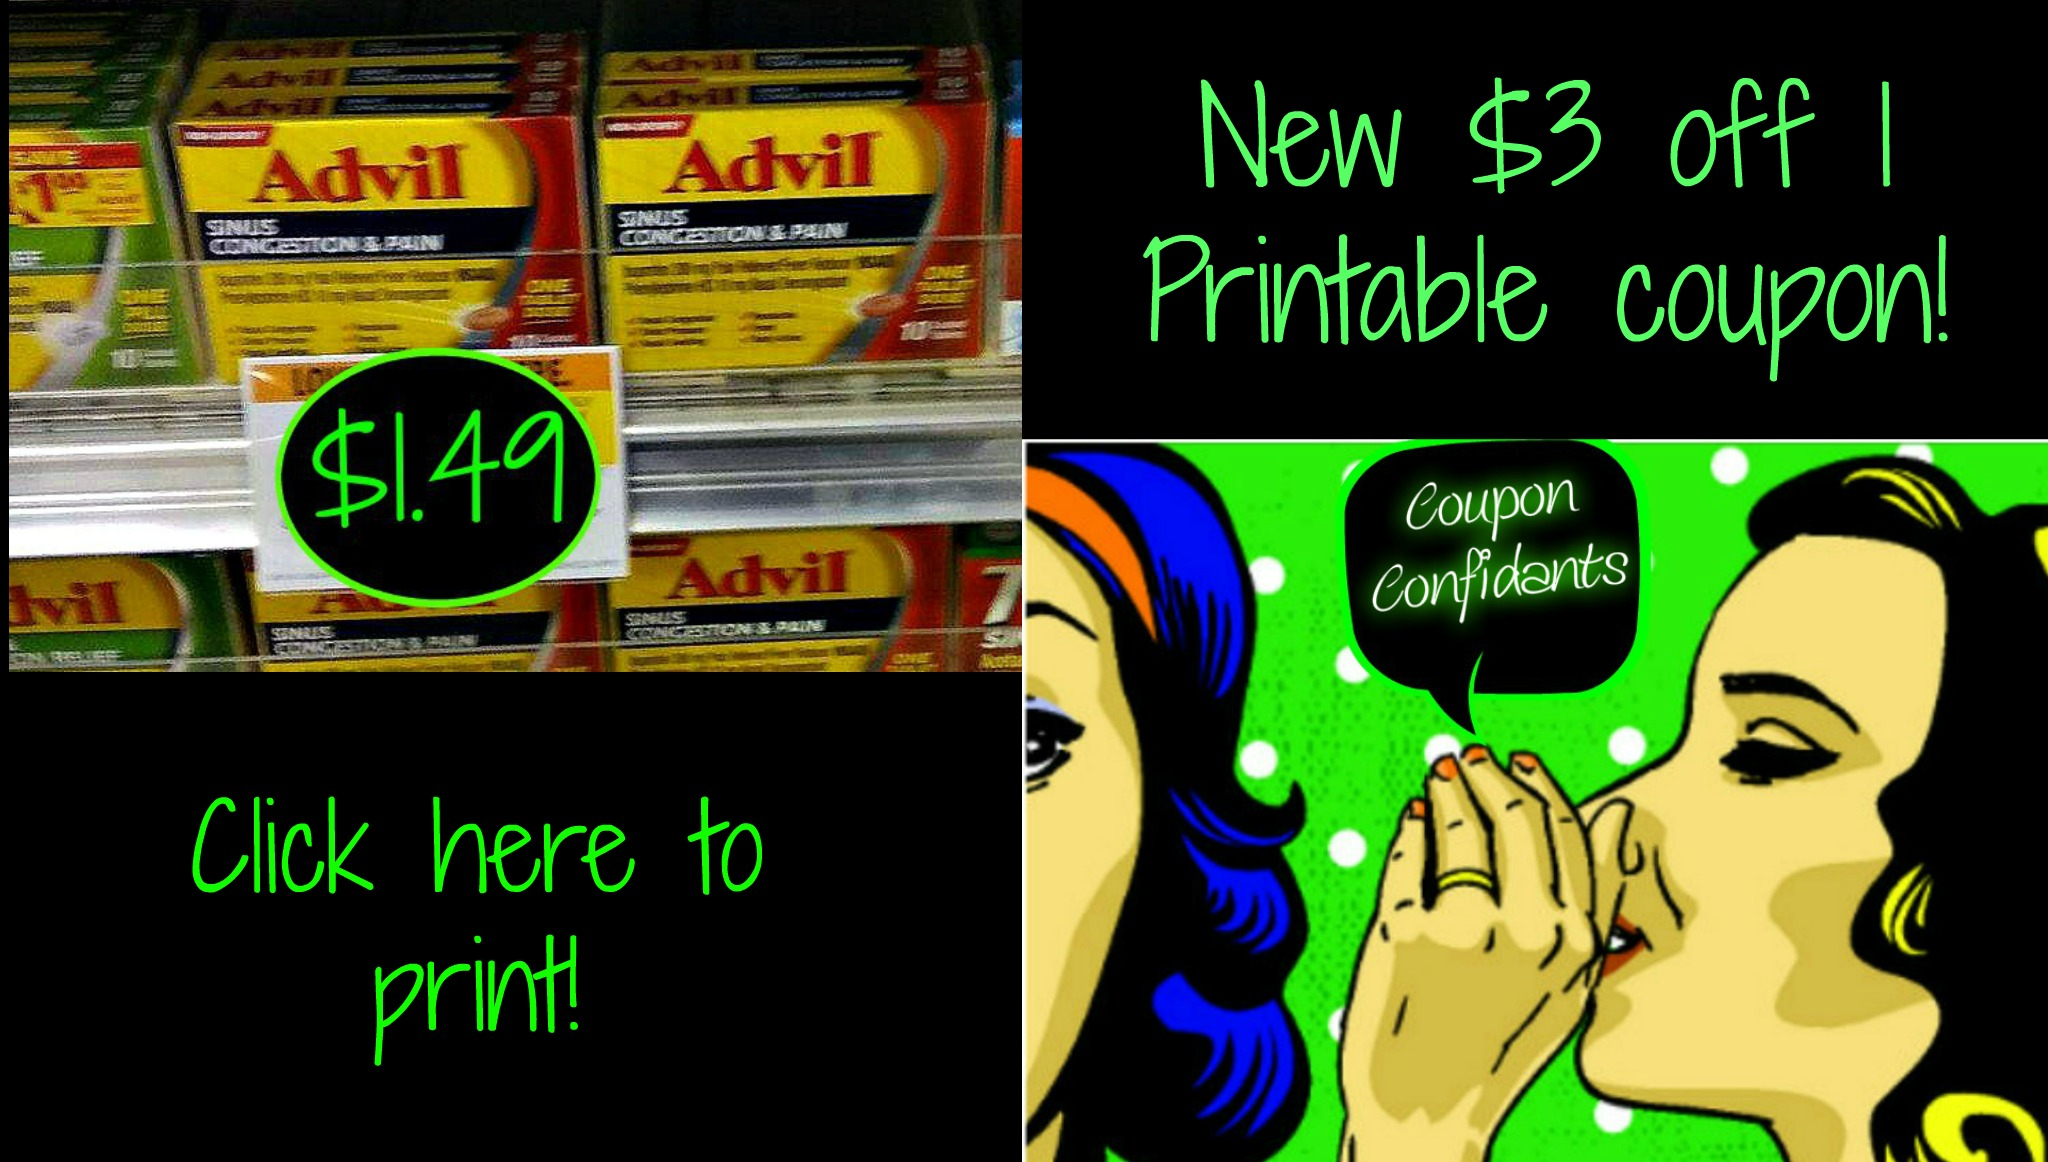 photo about Advil Printable Coupon referred to as Advil Sinus or Allergy Medicines merely $1.49 at Publix! Fresh new